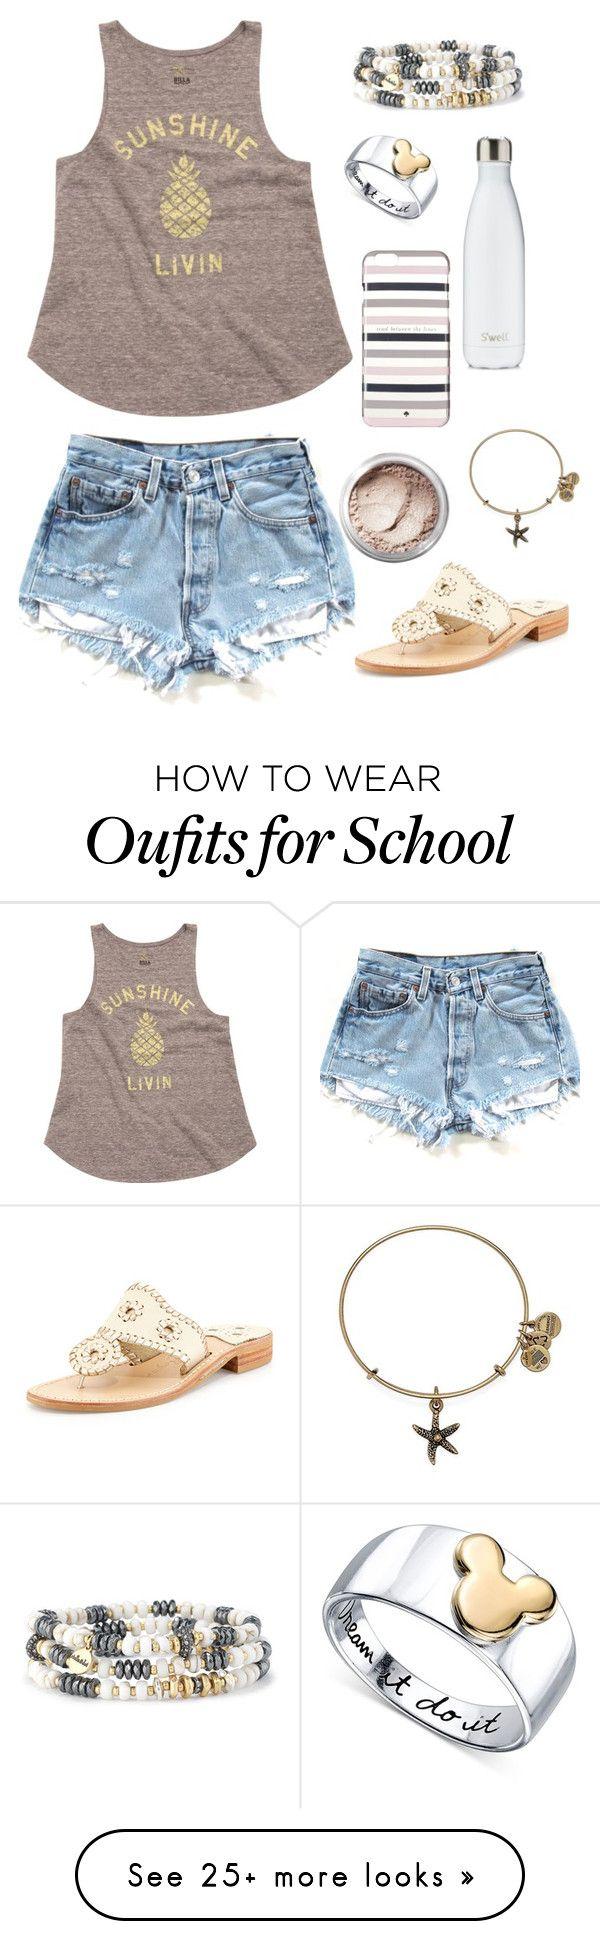 """Last Day of School Tomorrow!"" by cwilkween on Polyvore featuring Billabong, Stella & Dot, Disney, S'well, Kate Spade, Jack Rogers, Alex and Ani, Bare Escentuals and cwilkween"